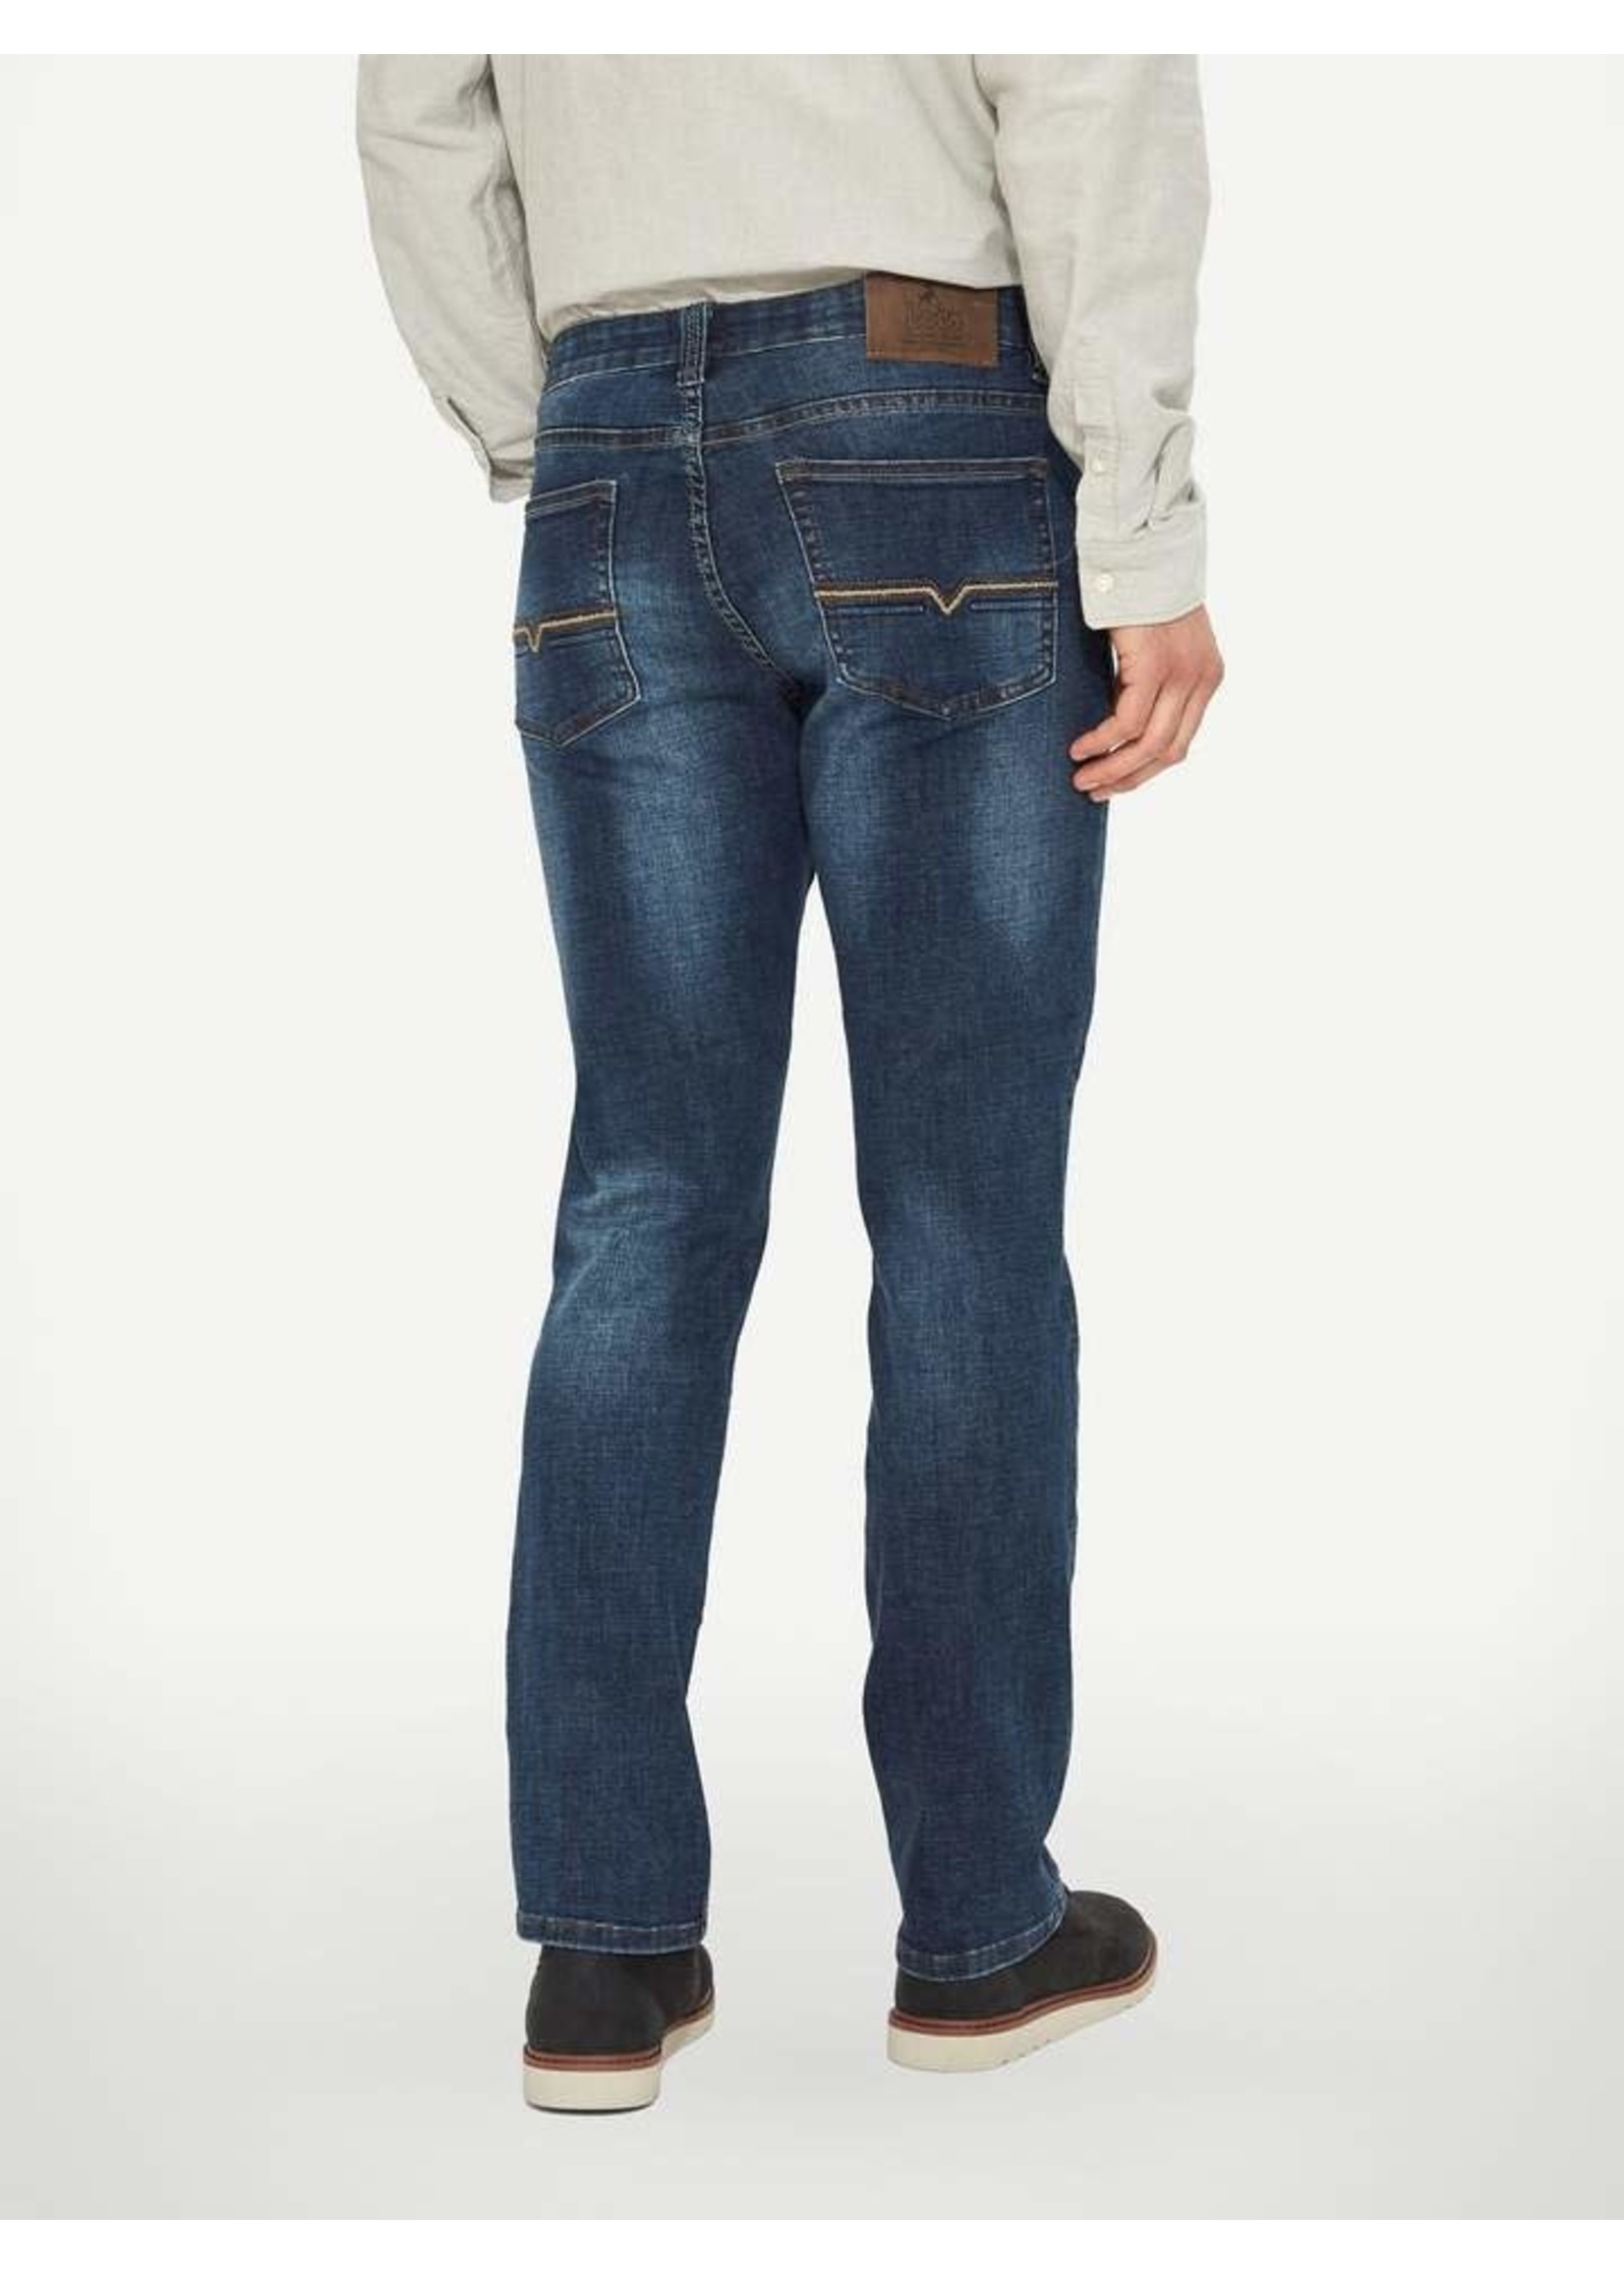 """Lois Jeans Canada The """"Brad Slim 6378"""" by Lois Jeans"""